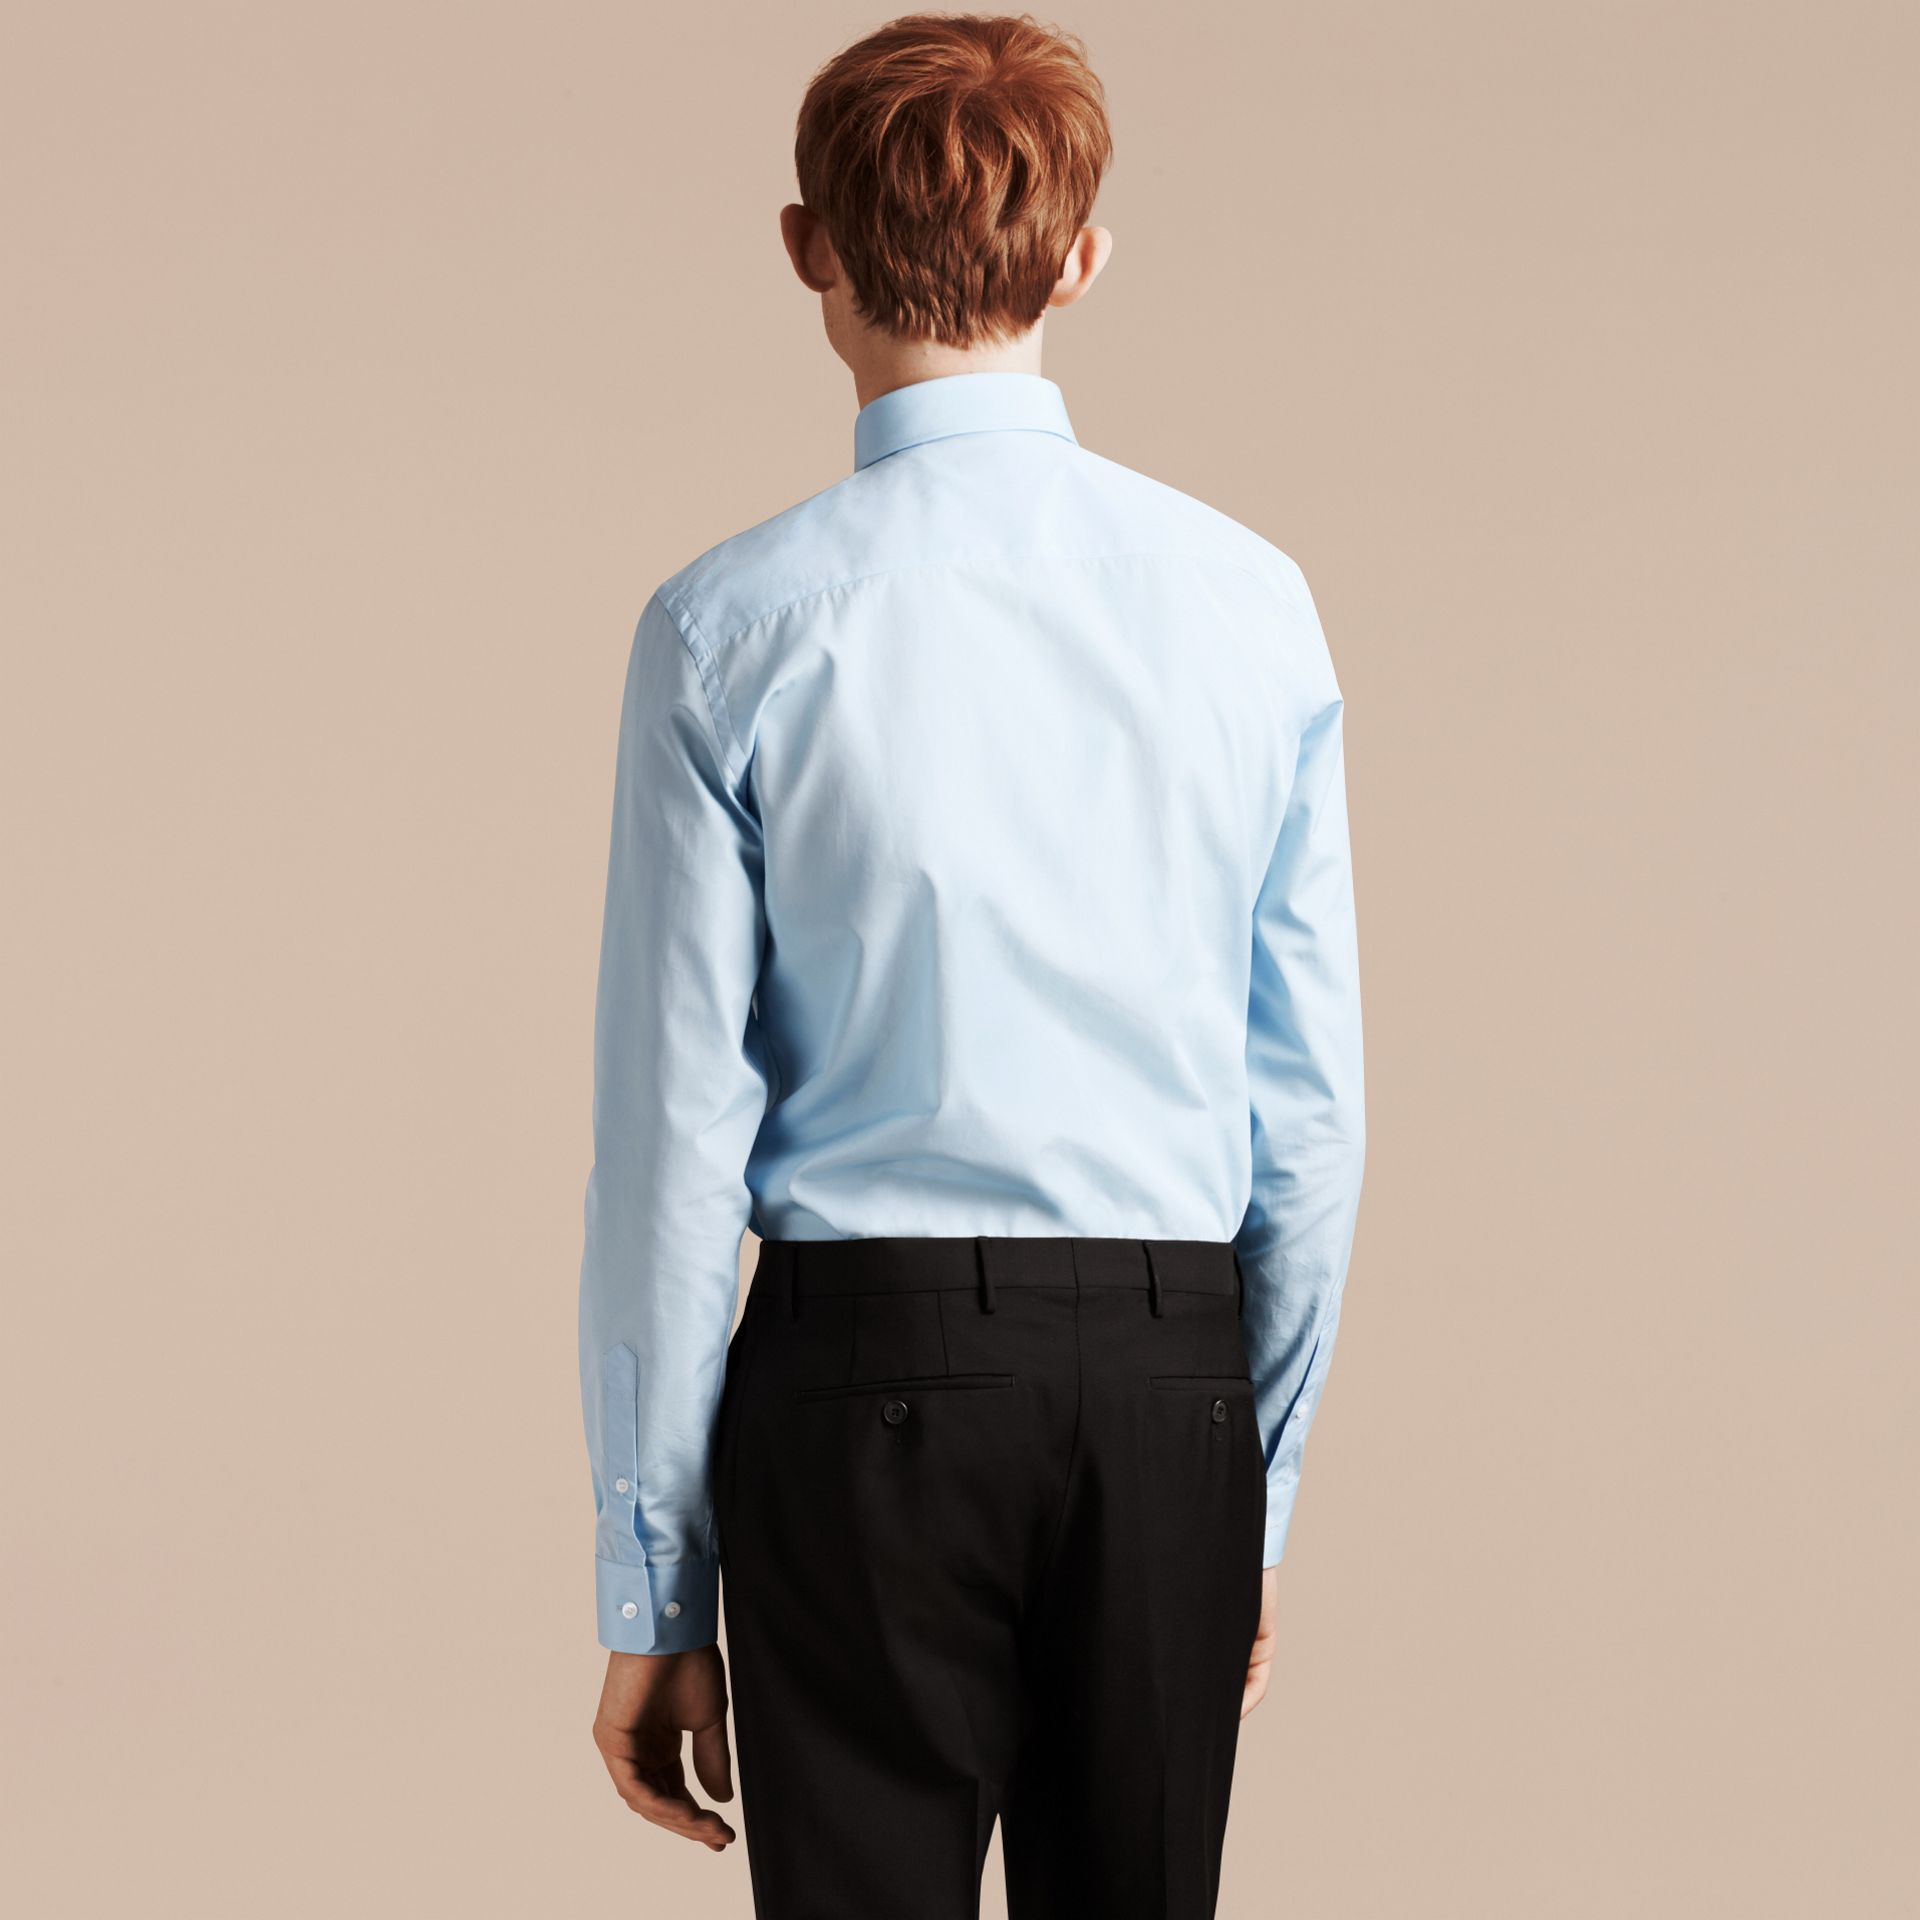 City blue Slim Fit Cotton Poplin Shirt City Blue - gallery image 3